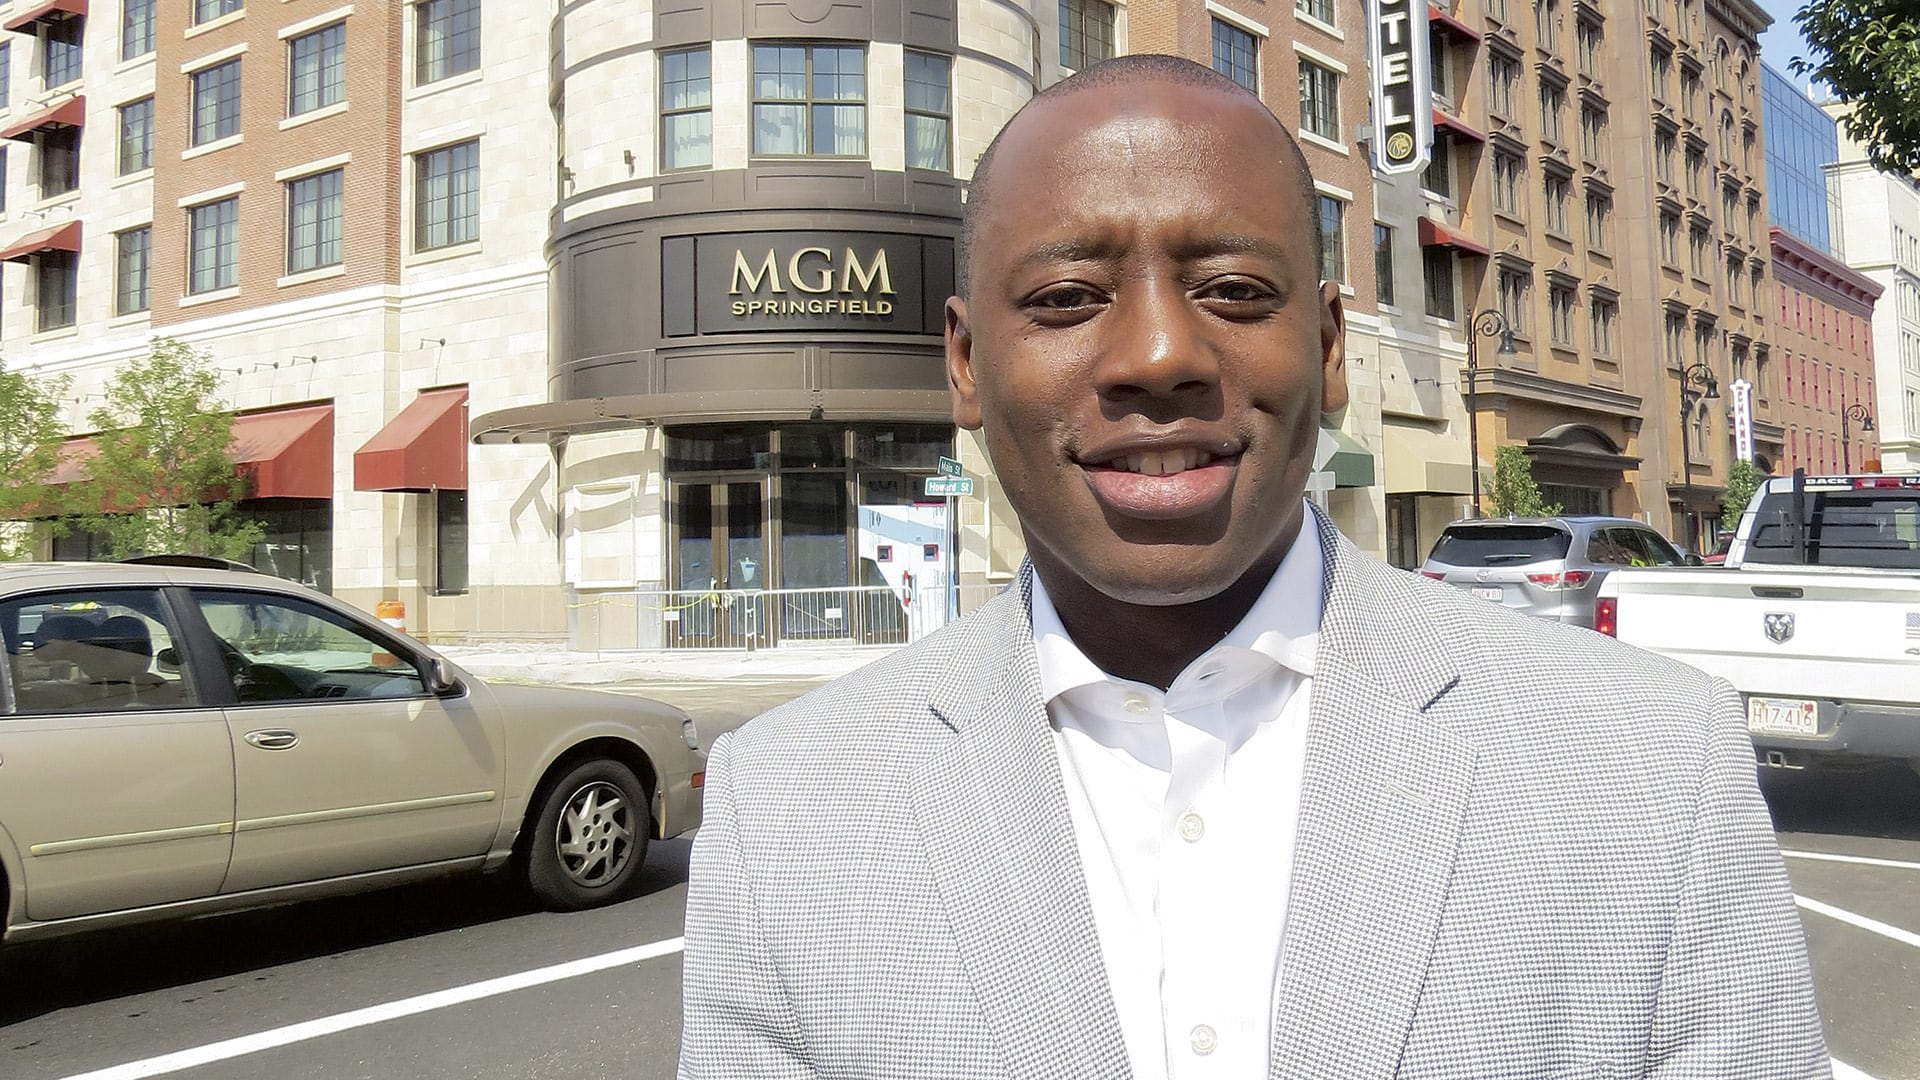 Alex Dixon was named general manager of MGM Springfield in the spring of 2017.